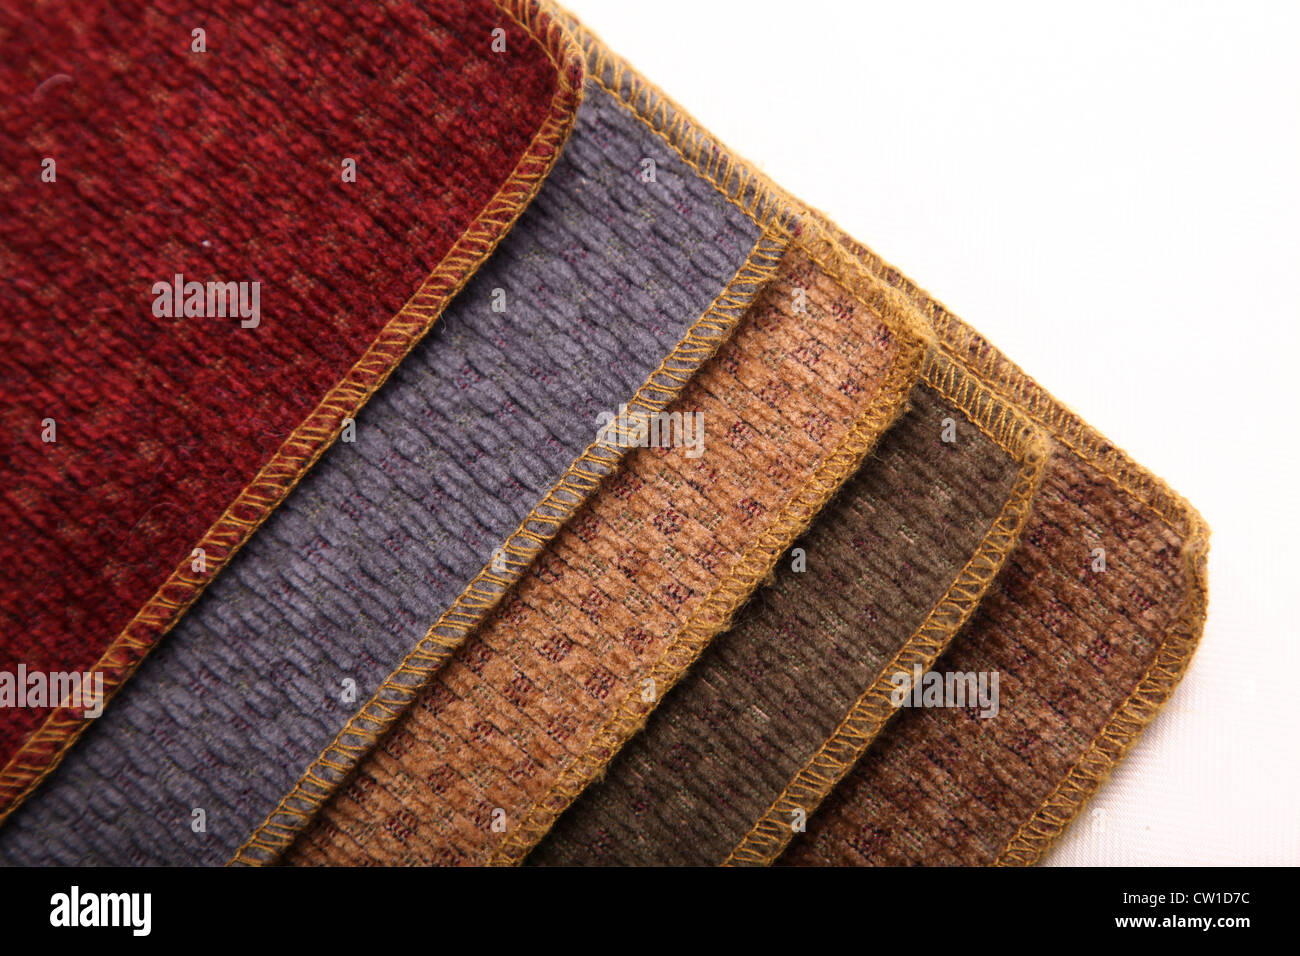 A book of upholstery samples. - Stock Image